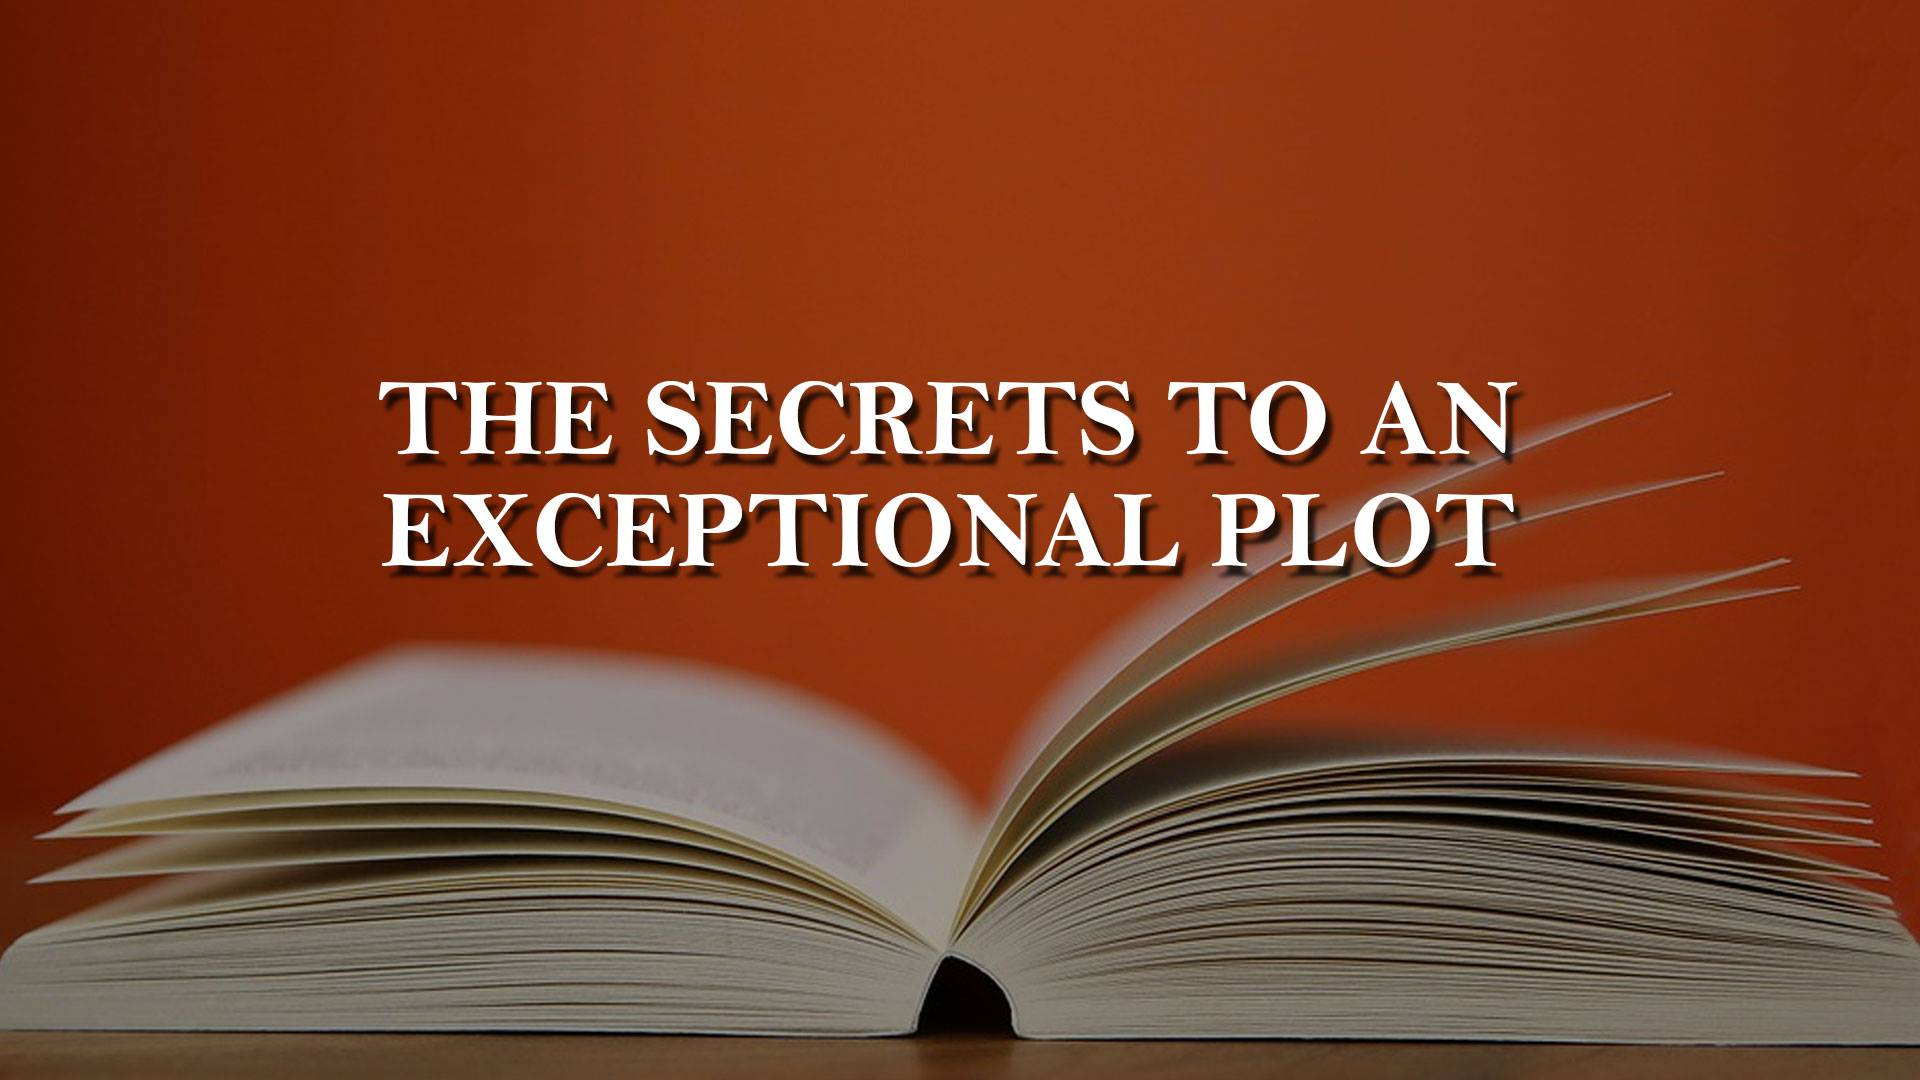 The Secrets to an Exceptional Plot